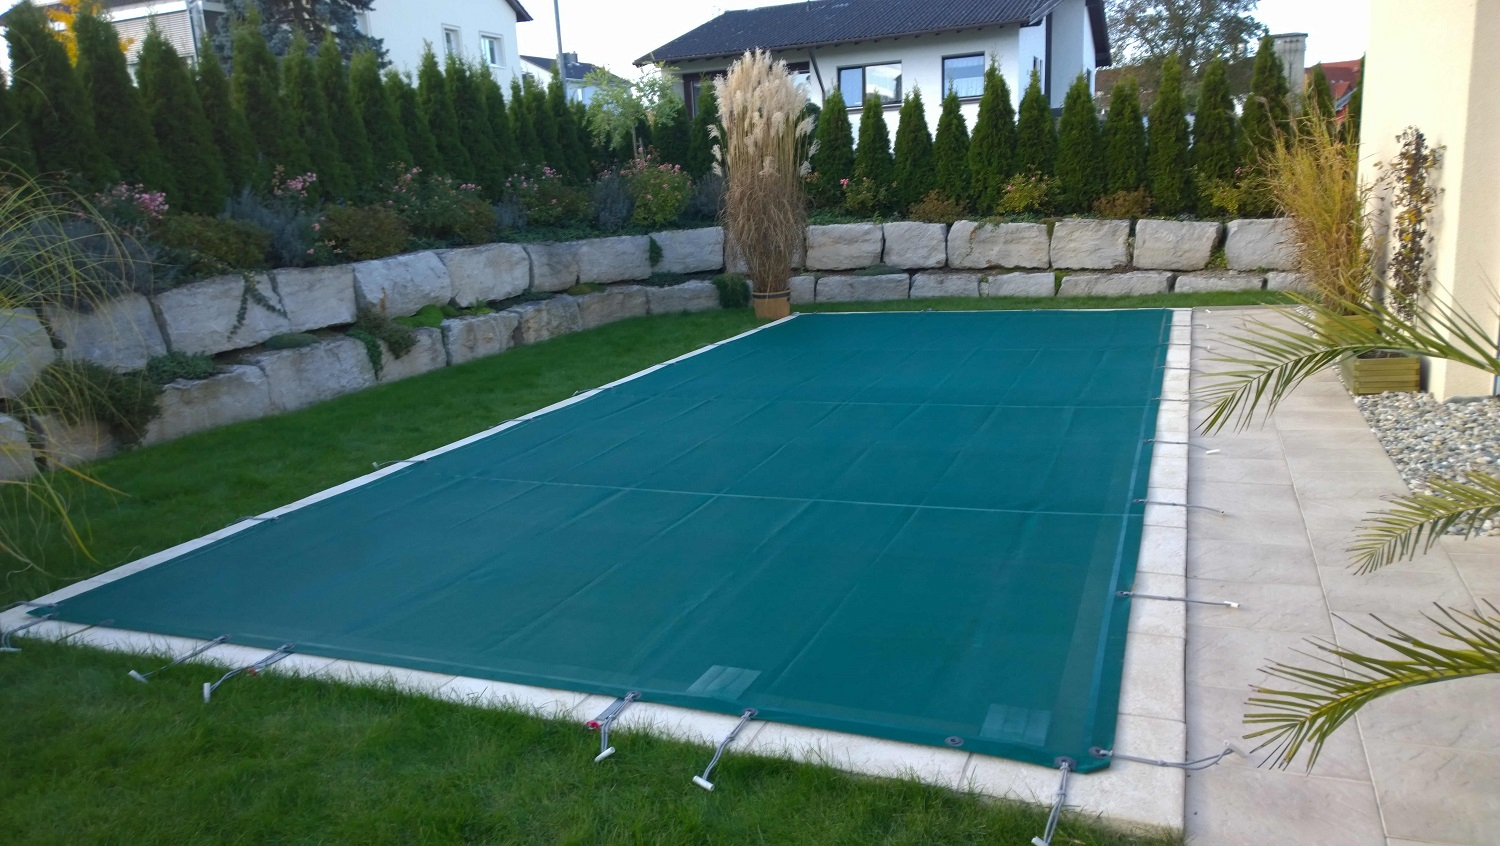 Filet De Protection De Piscine - Bac Pool Systems pour Filet Protection Piscine